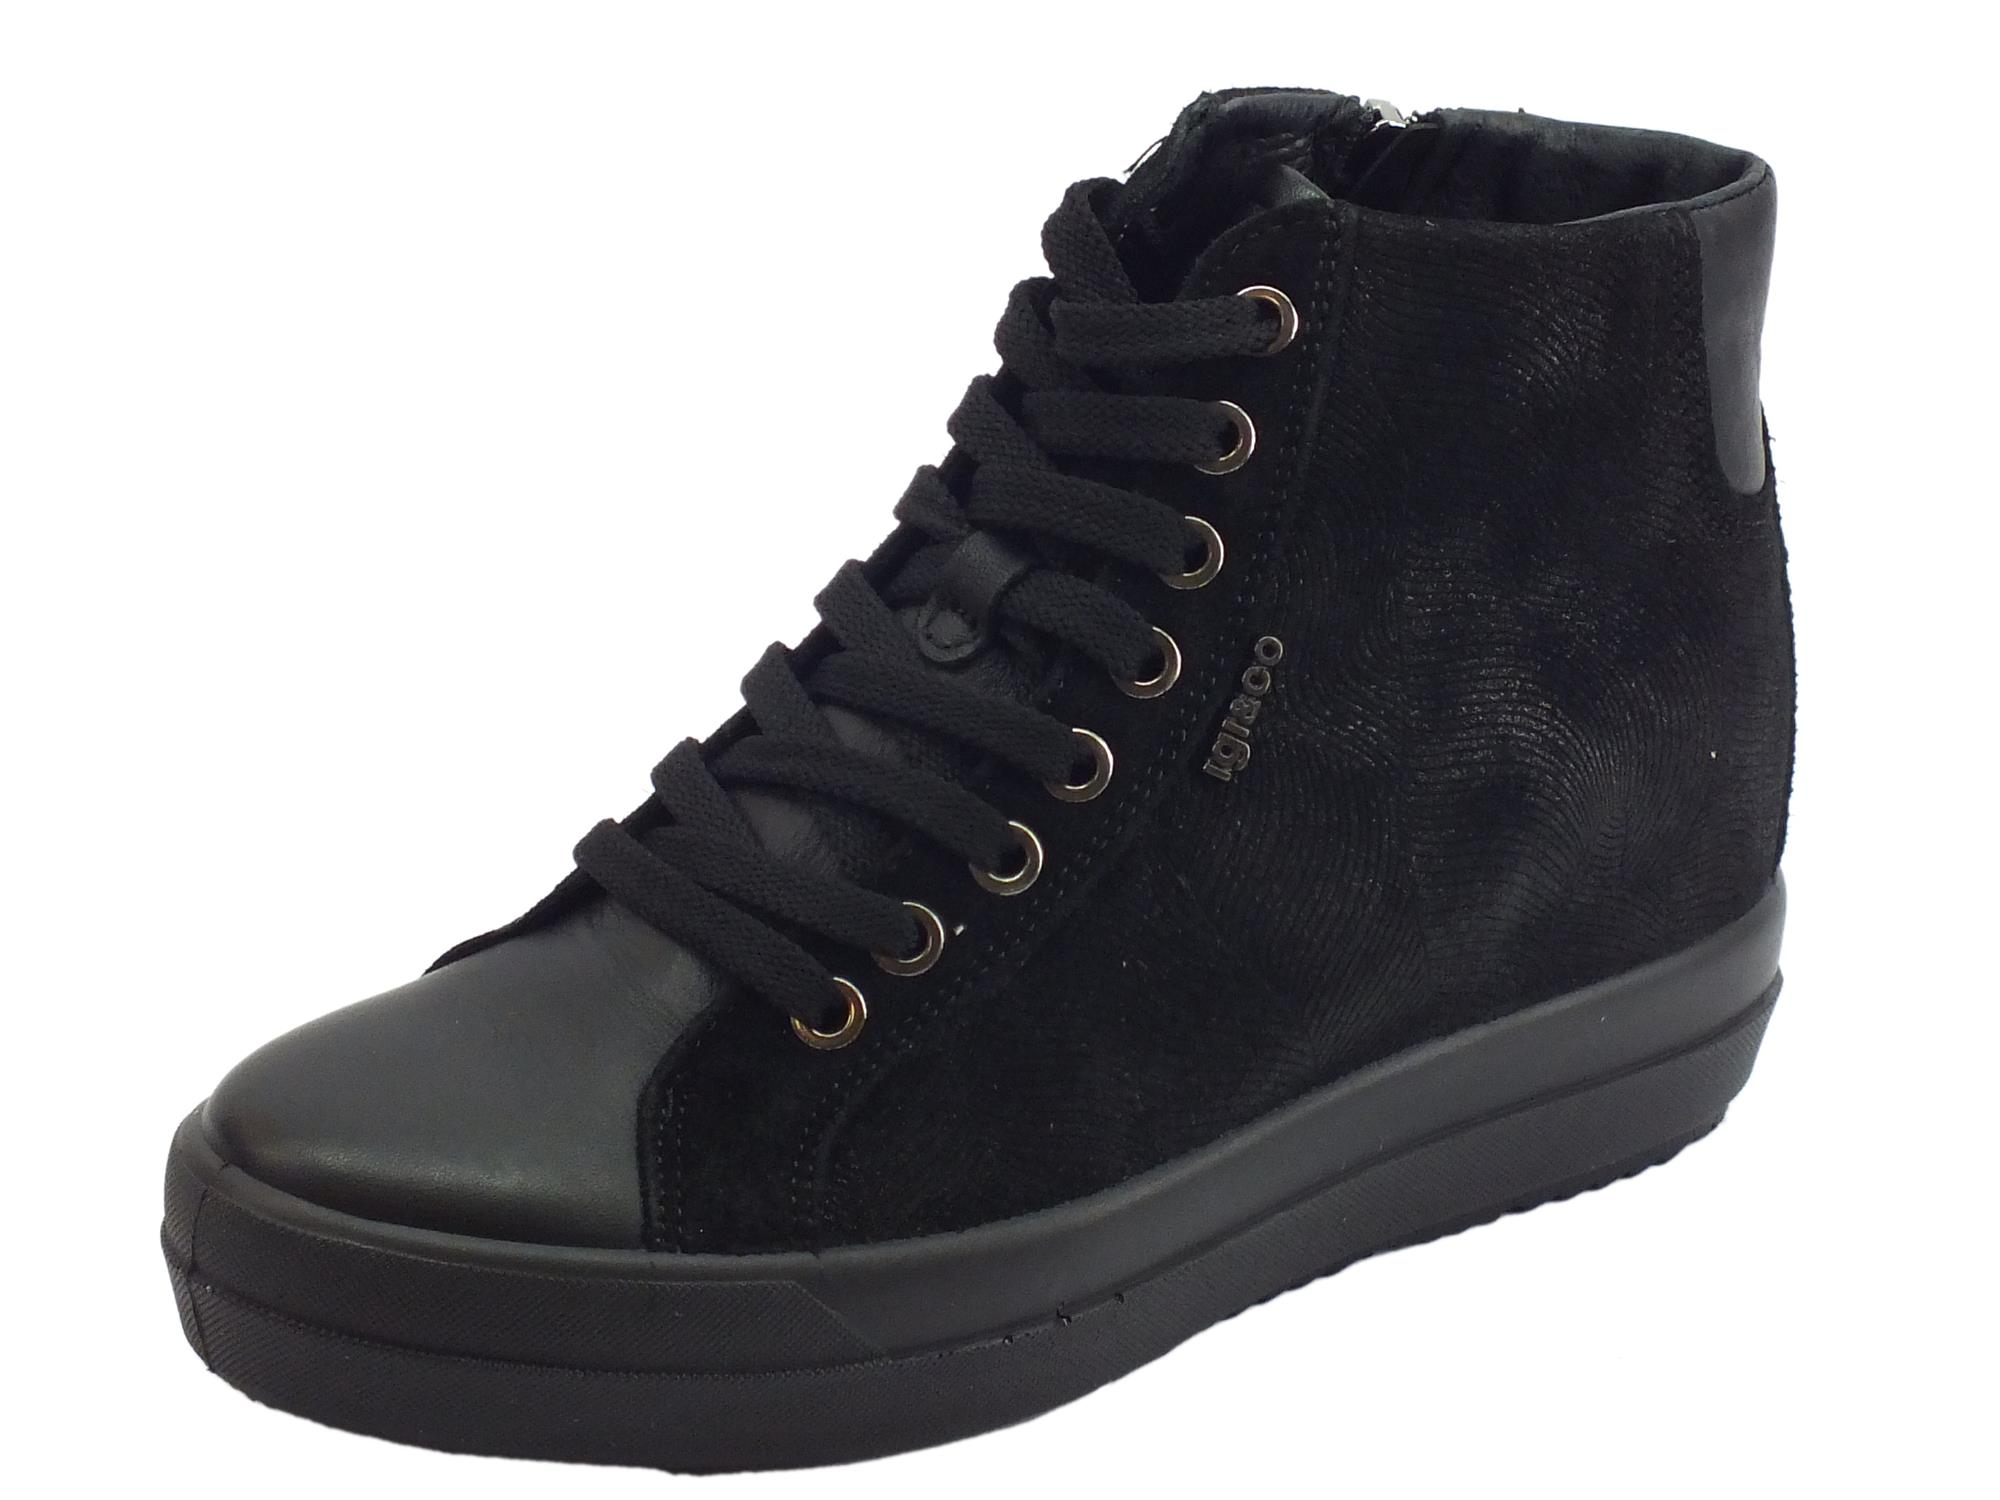 Sneakers Igi Co per donna in scamosciato nero zeppa interna media aefea6b9123